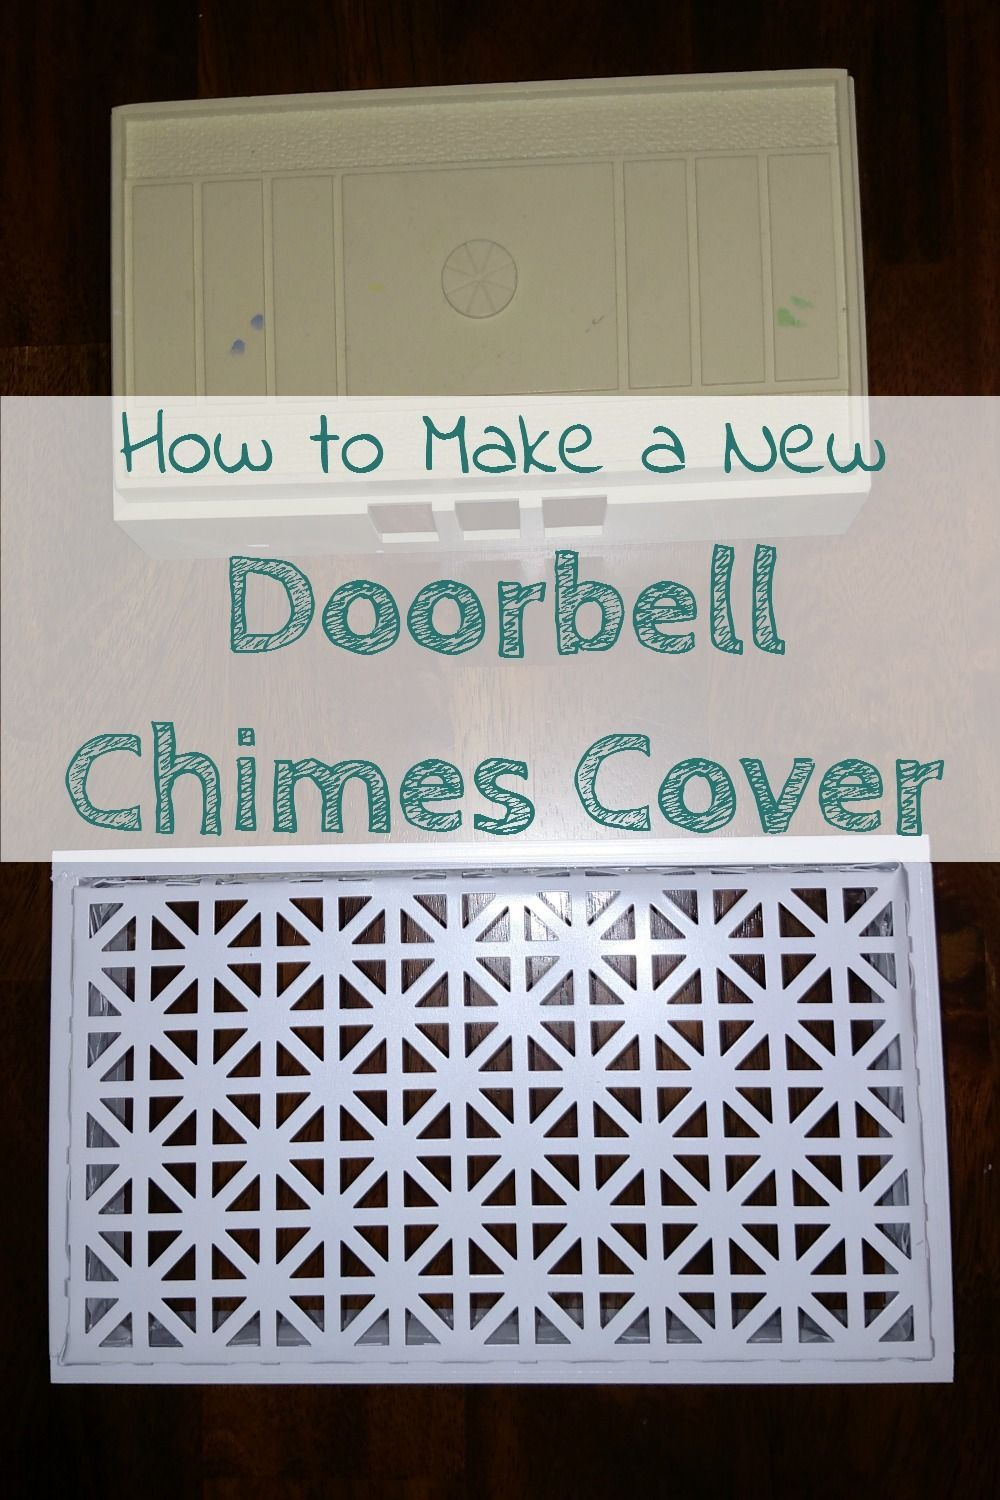 Perfect Decorative Doorbell Chimes Cover | Doorbell chime, Doorbell cover  ZA17